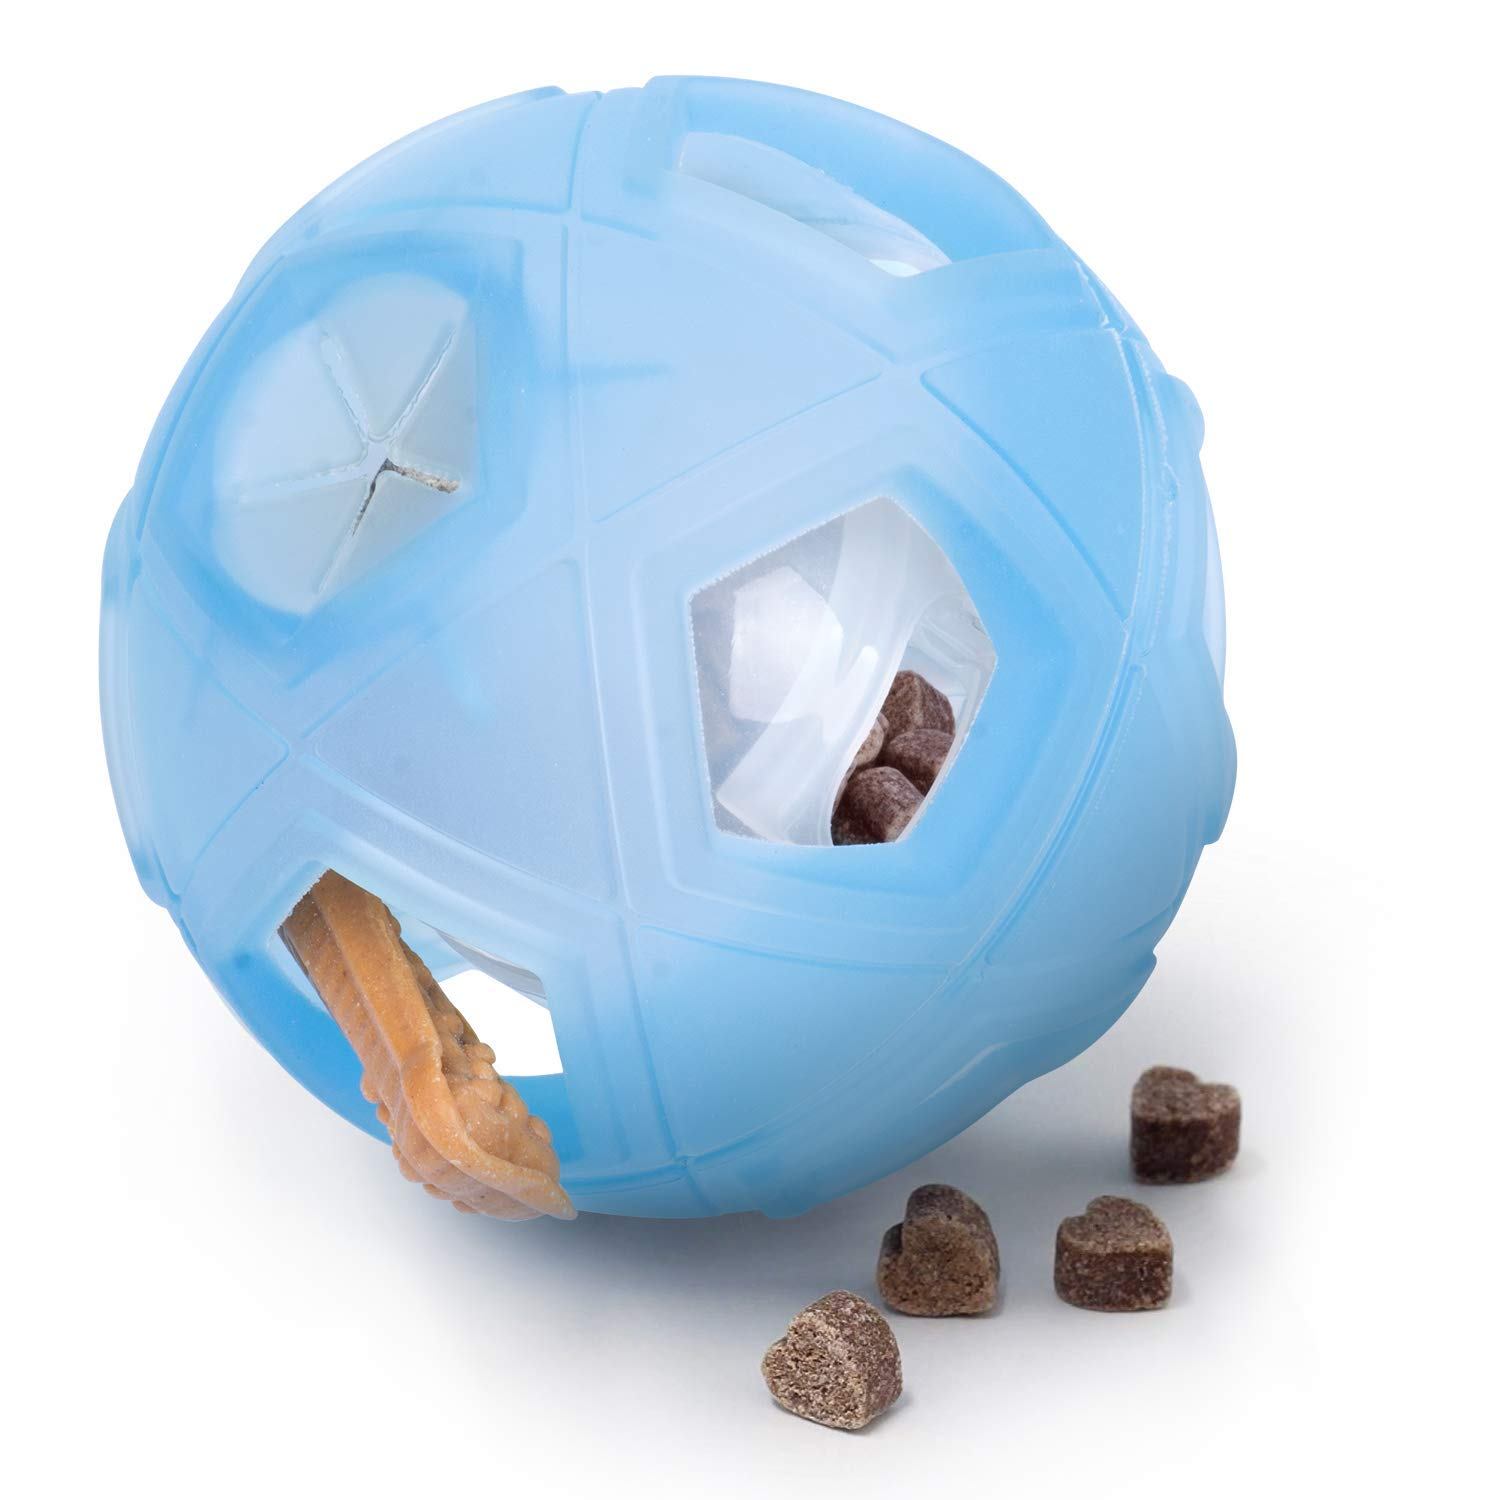 "LumoLeaf Dog Treat Ball, 7"" Interactive IQ Treat Dispensing Ball Toy with Adjustable Difficulty Setting for Medium to Large Dogs and Cats."